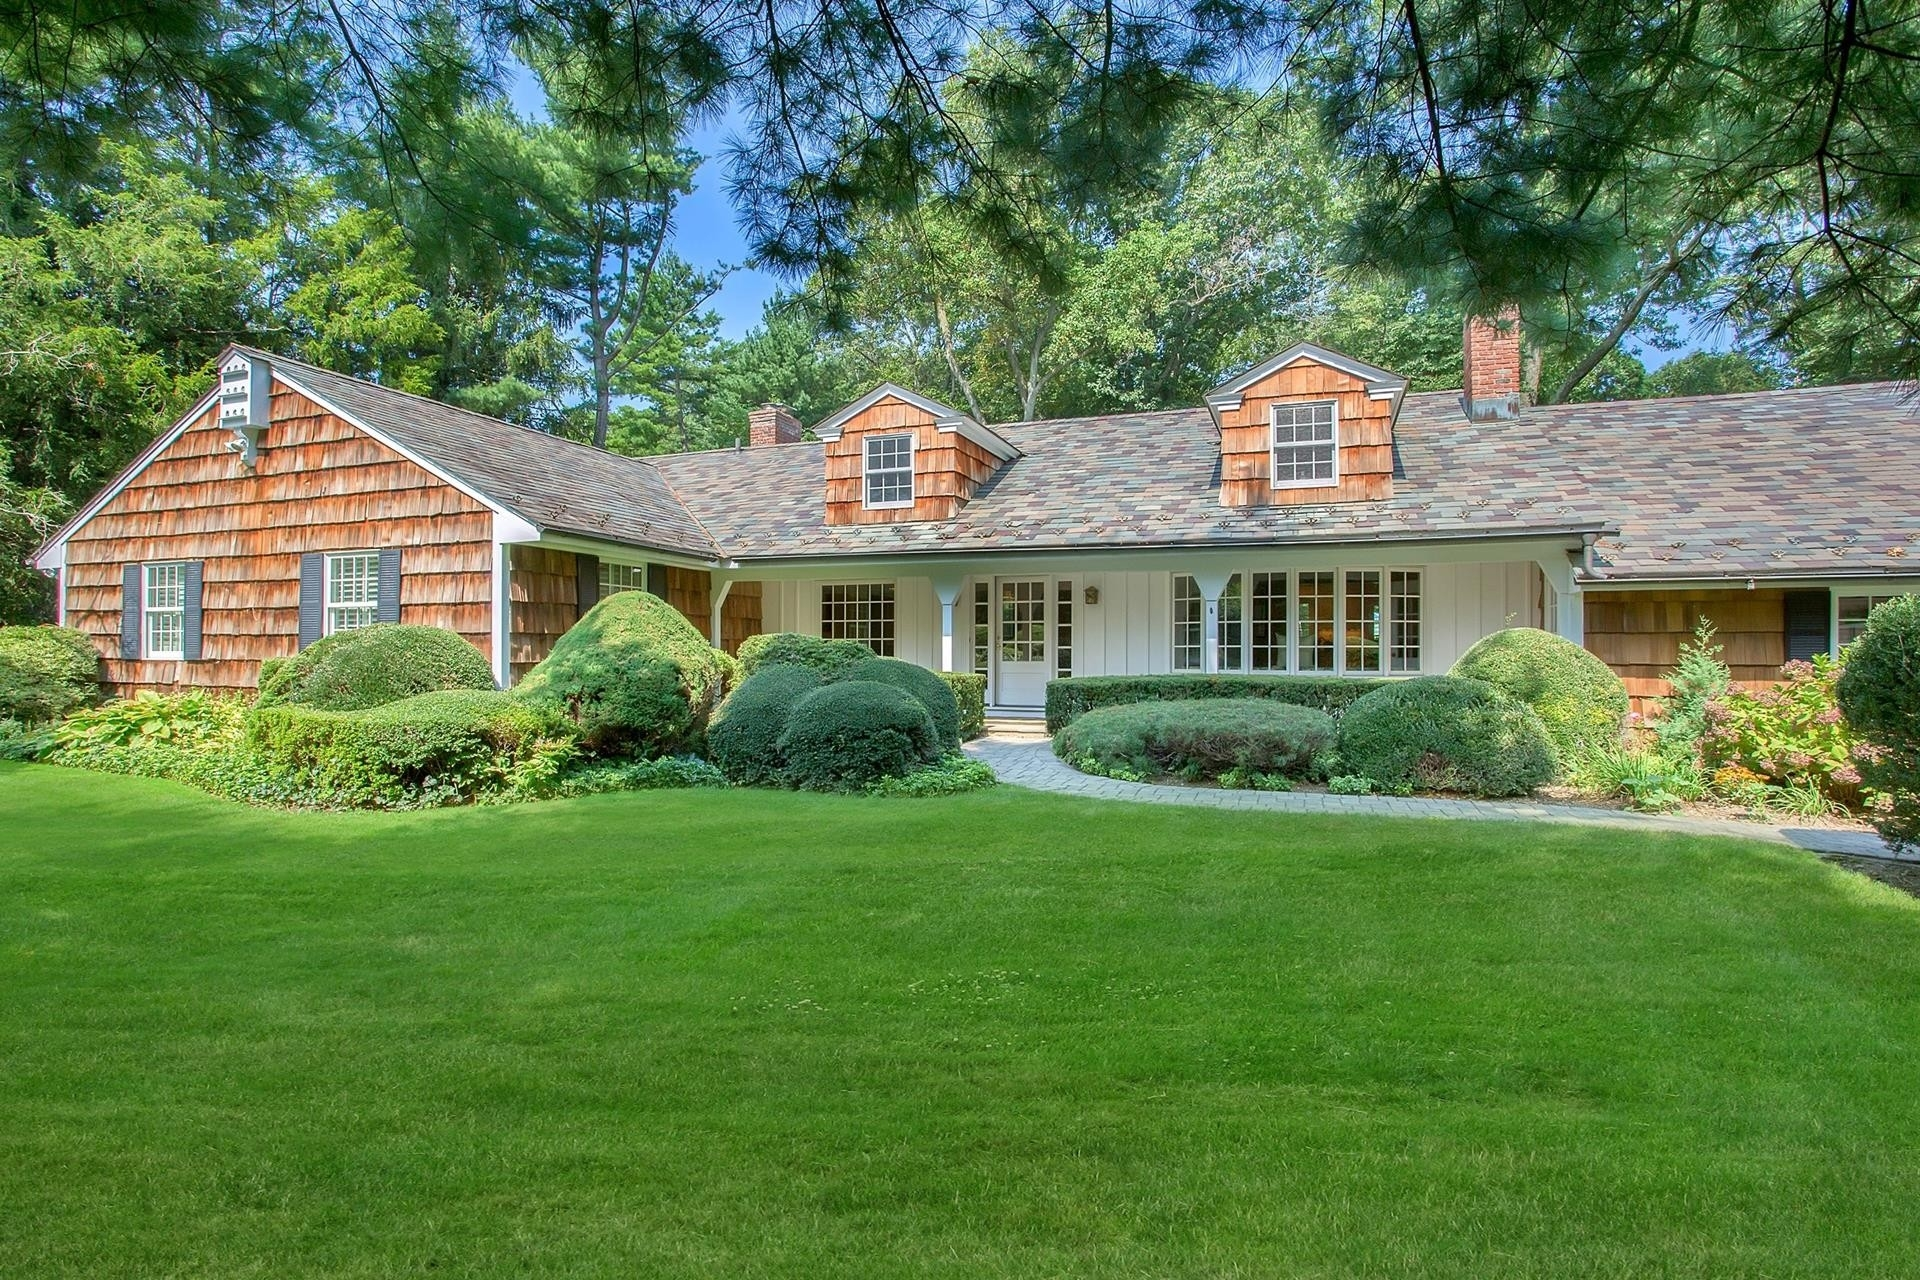 Single Family Home at Manhasset